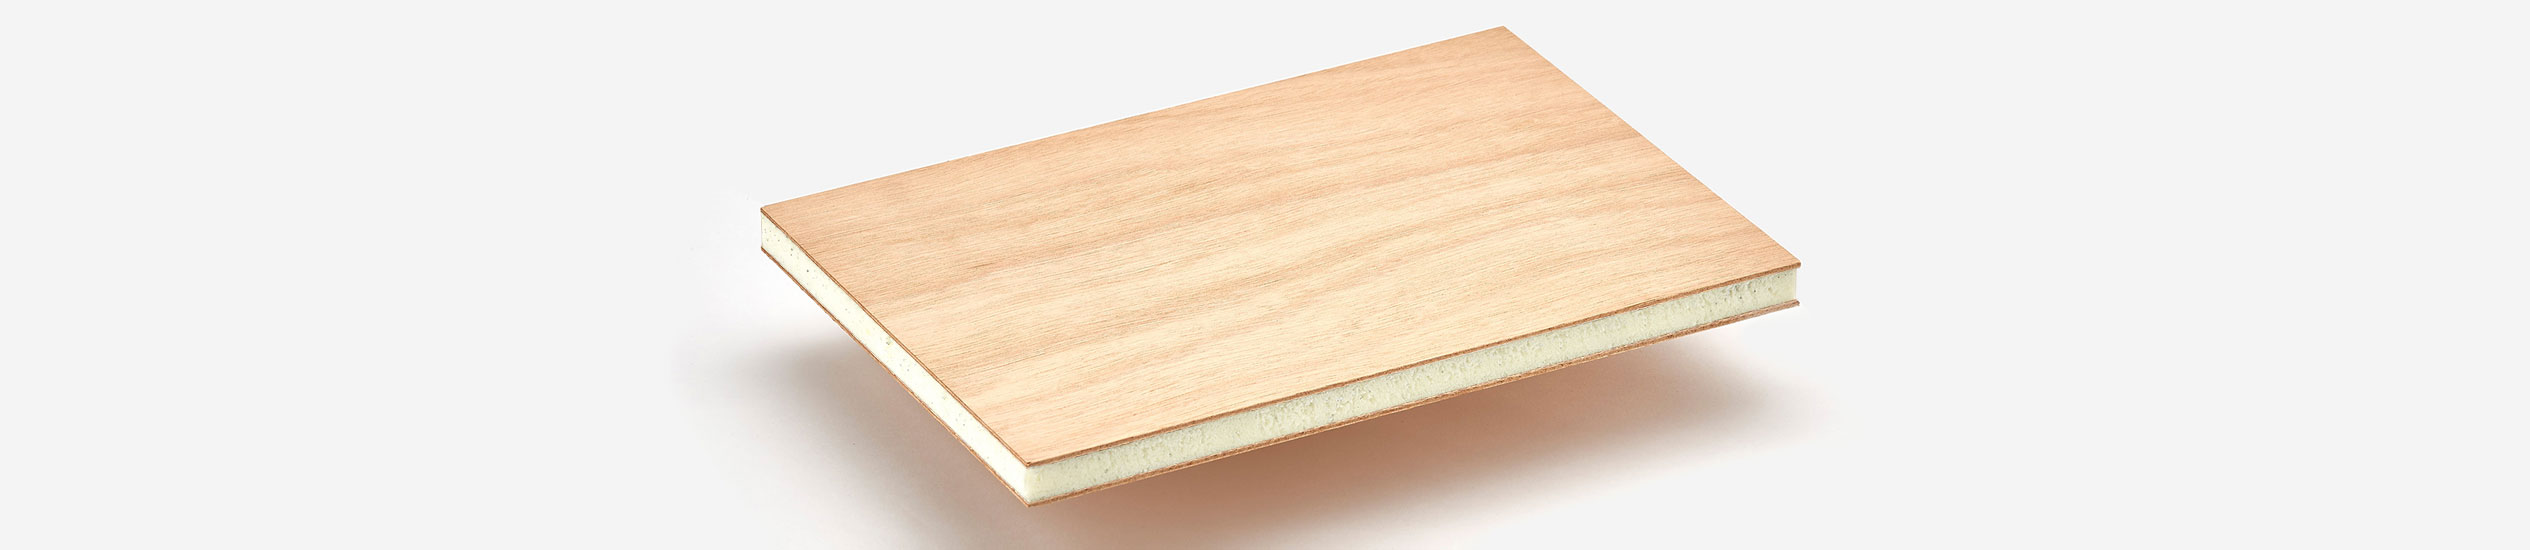 COMPOCEL-WF is a sandwich panel with a PVC foam core and skins in plywood.